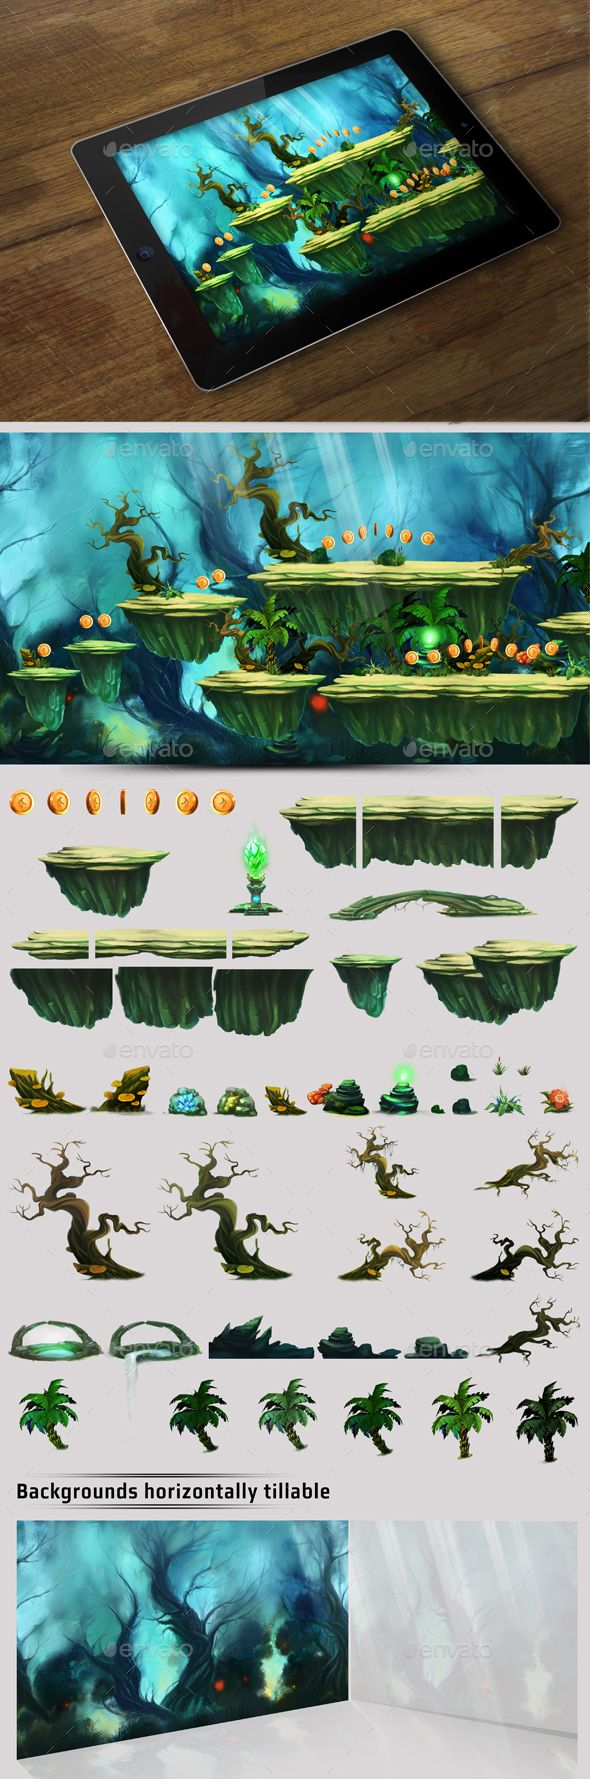 2D  Platform Game  - Backgrounds Game Assets I download here http://graphicriver.net/item/2d-platform-game-/16227506?ref=imanvector